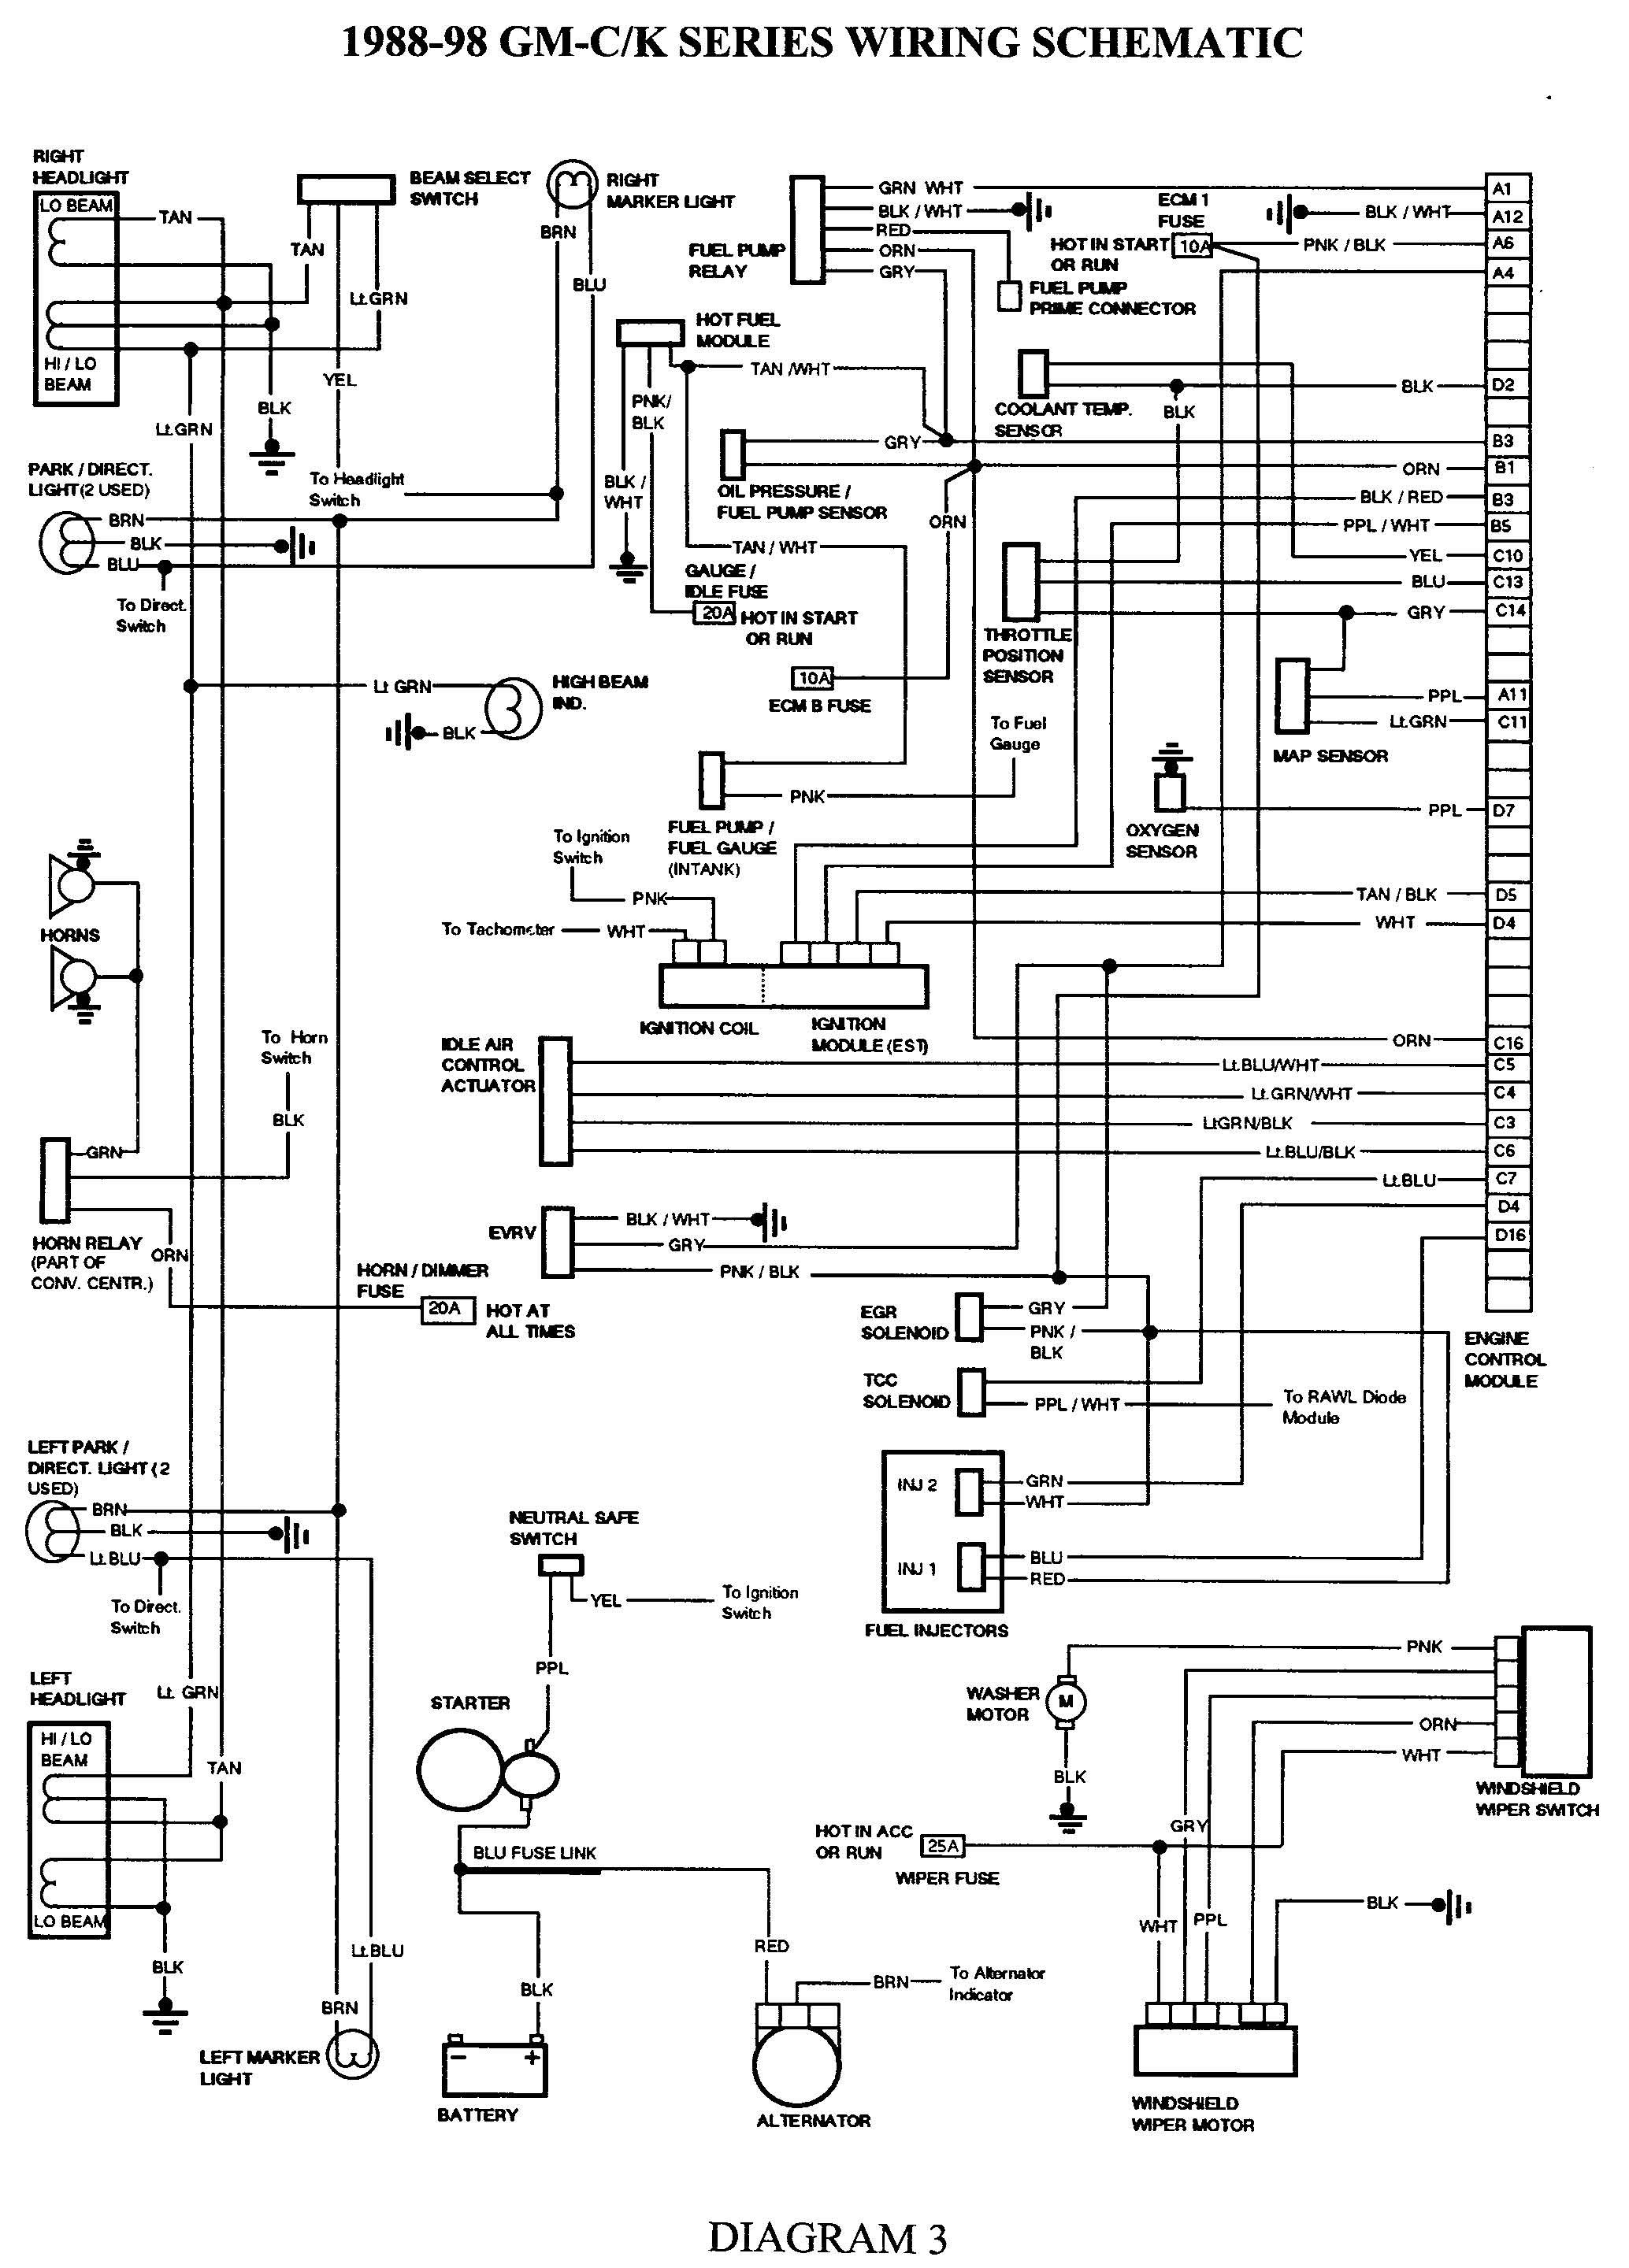 b2f2e5dbdc07dada83ef514f6d4ce3d4 gmc truck wiring diagrams on gm wiring harness diagram 88 98 kc gm truck wiring harness at bayanpartner.co